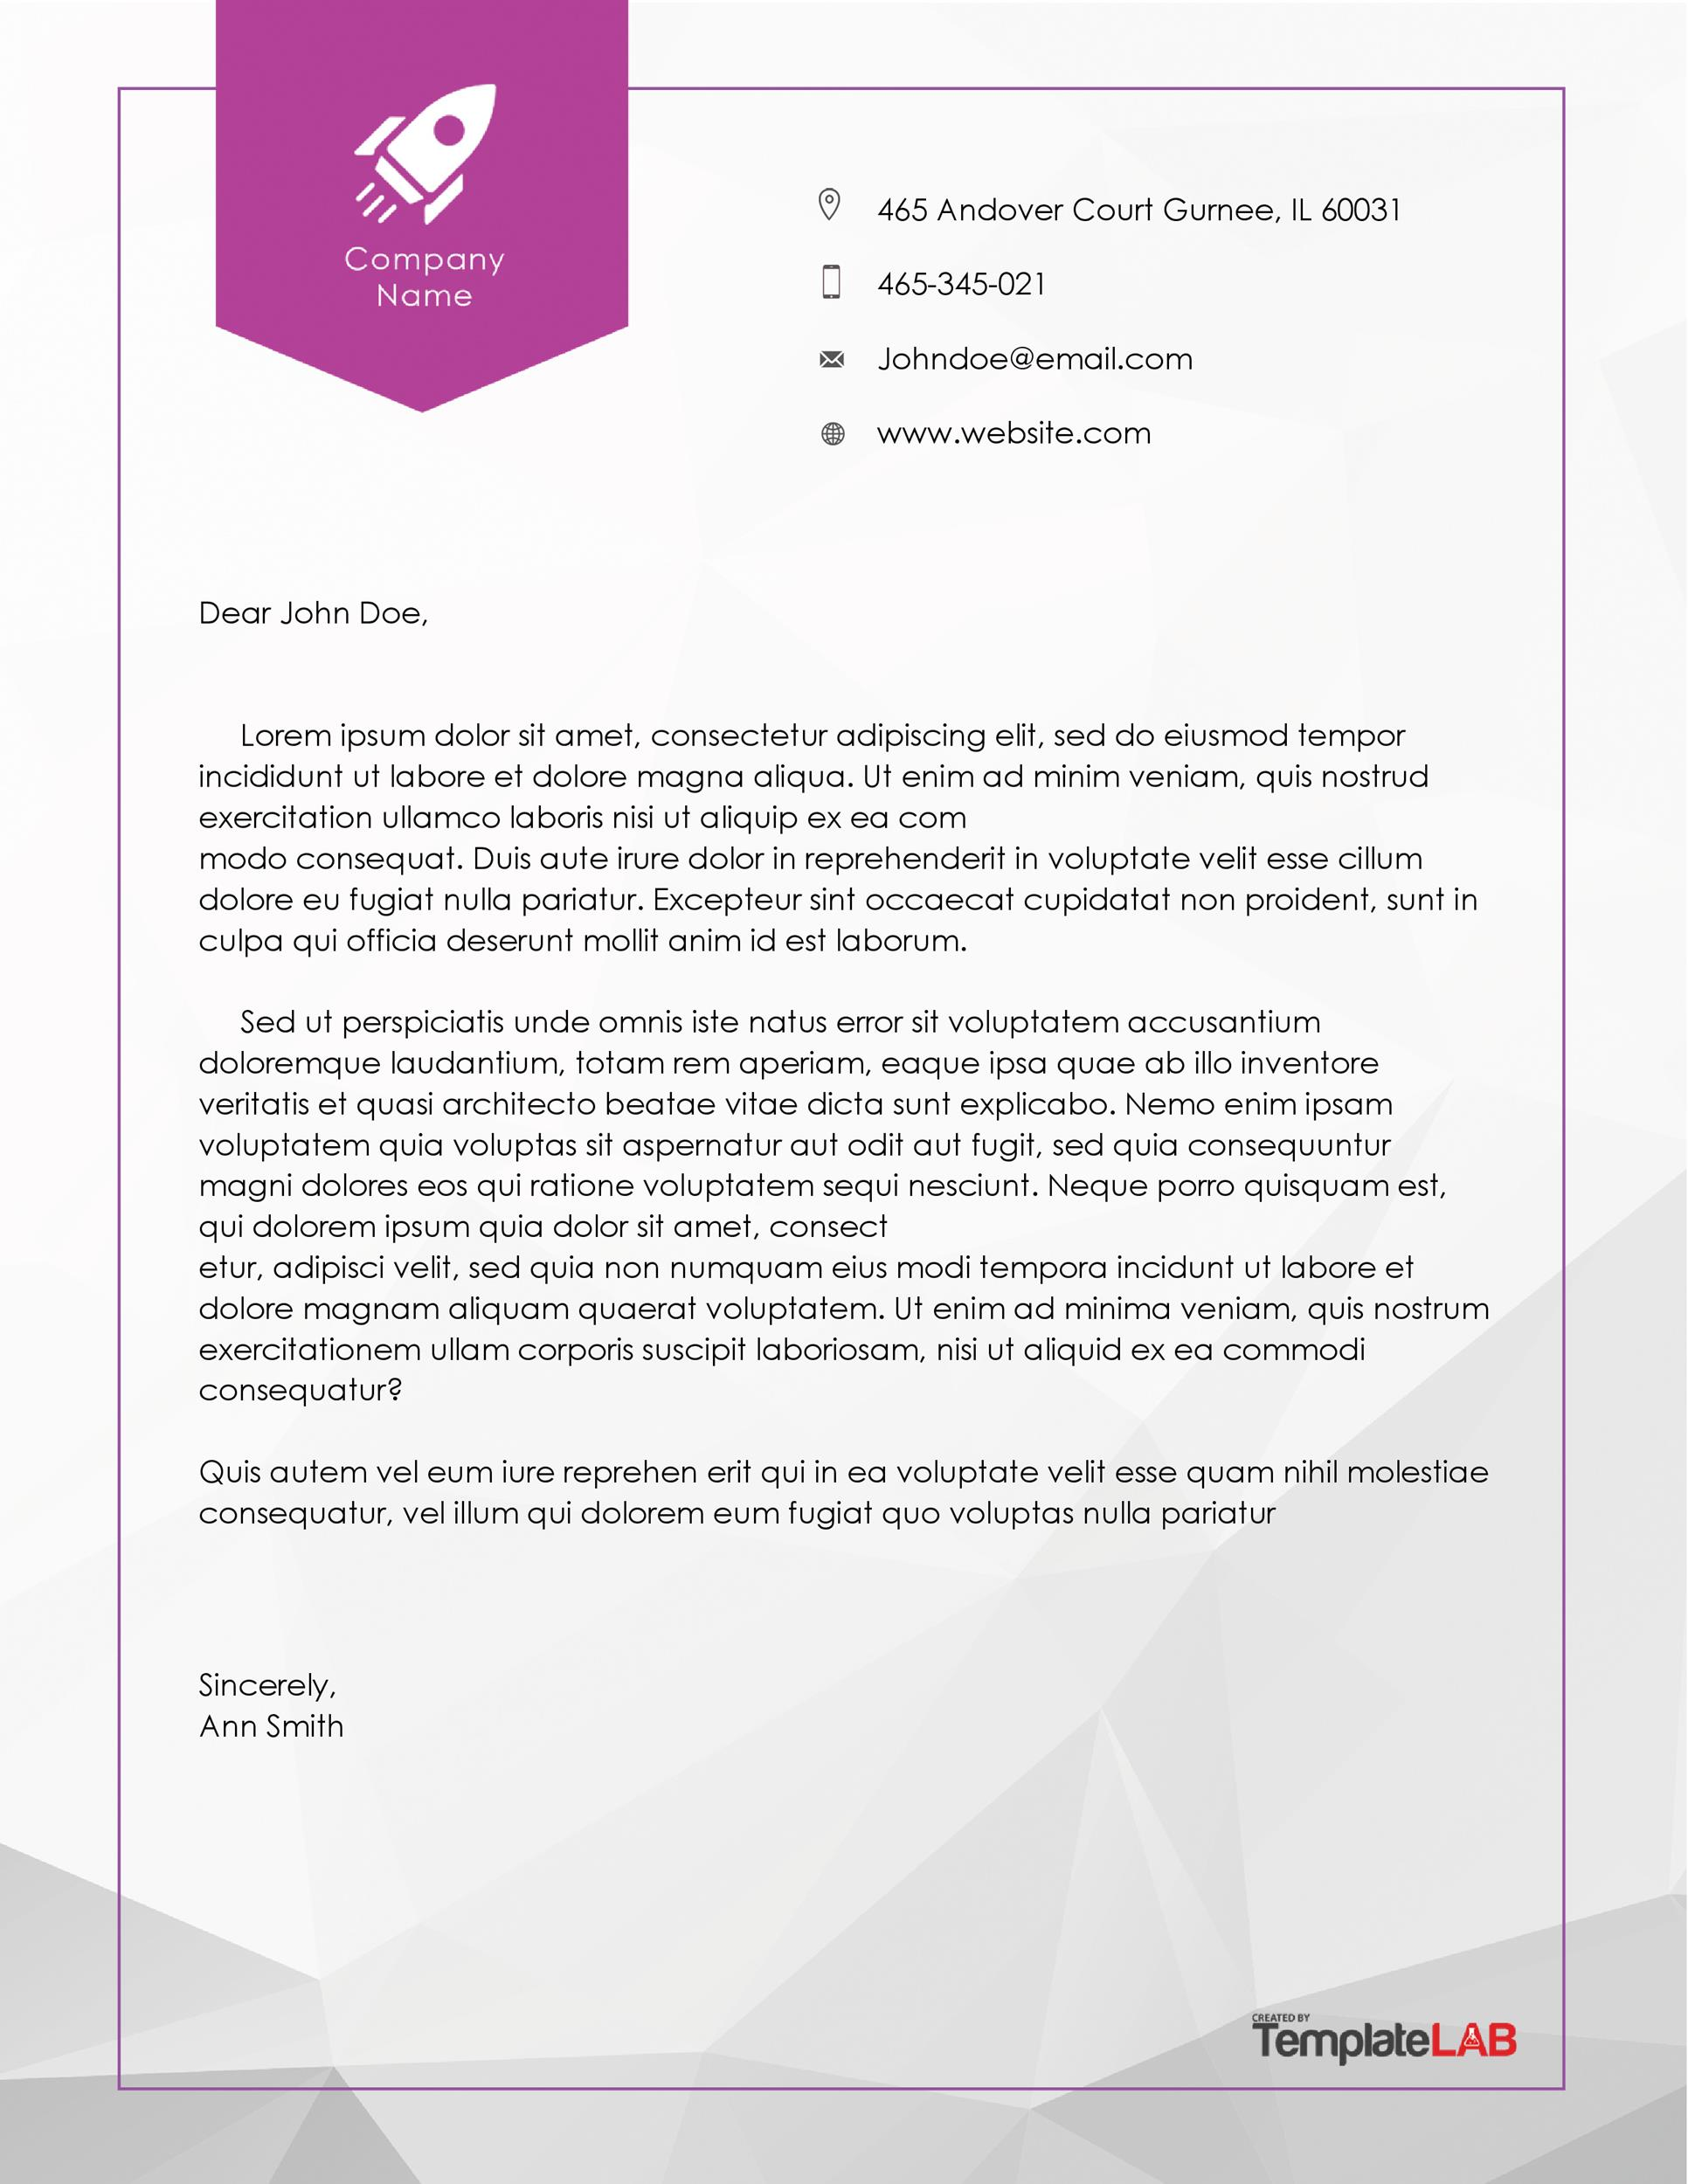 Free Official Letterhead Template 2 (Word) - TemplateLab Exclusive